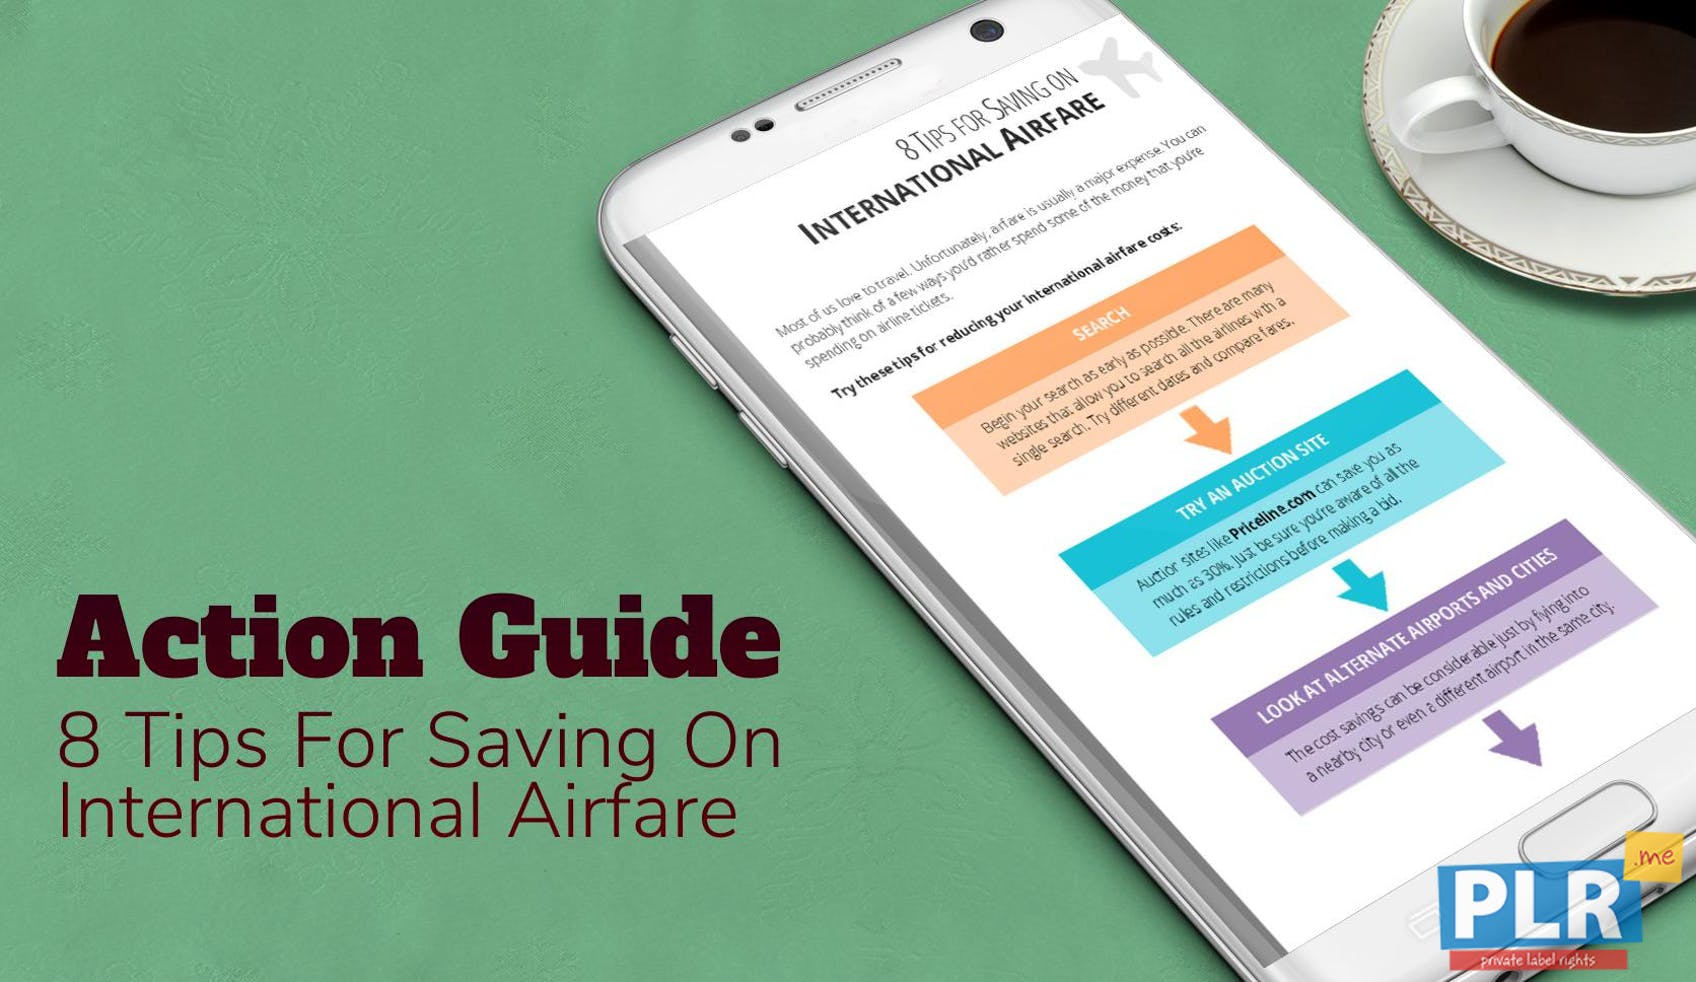 8 Tips For Saving On International Airfare